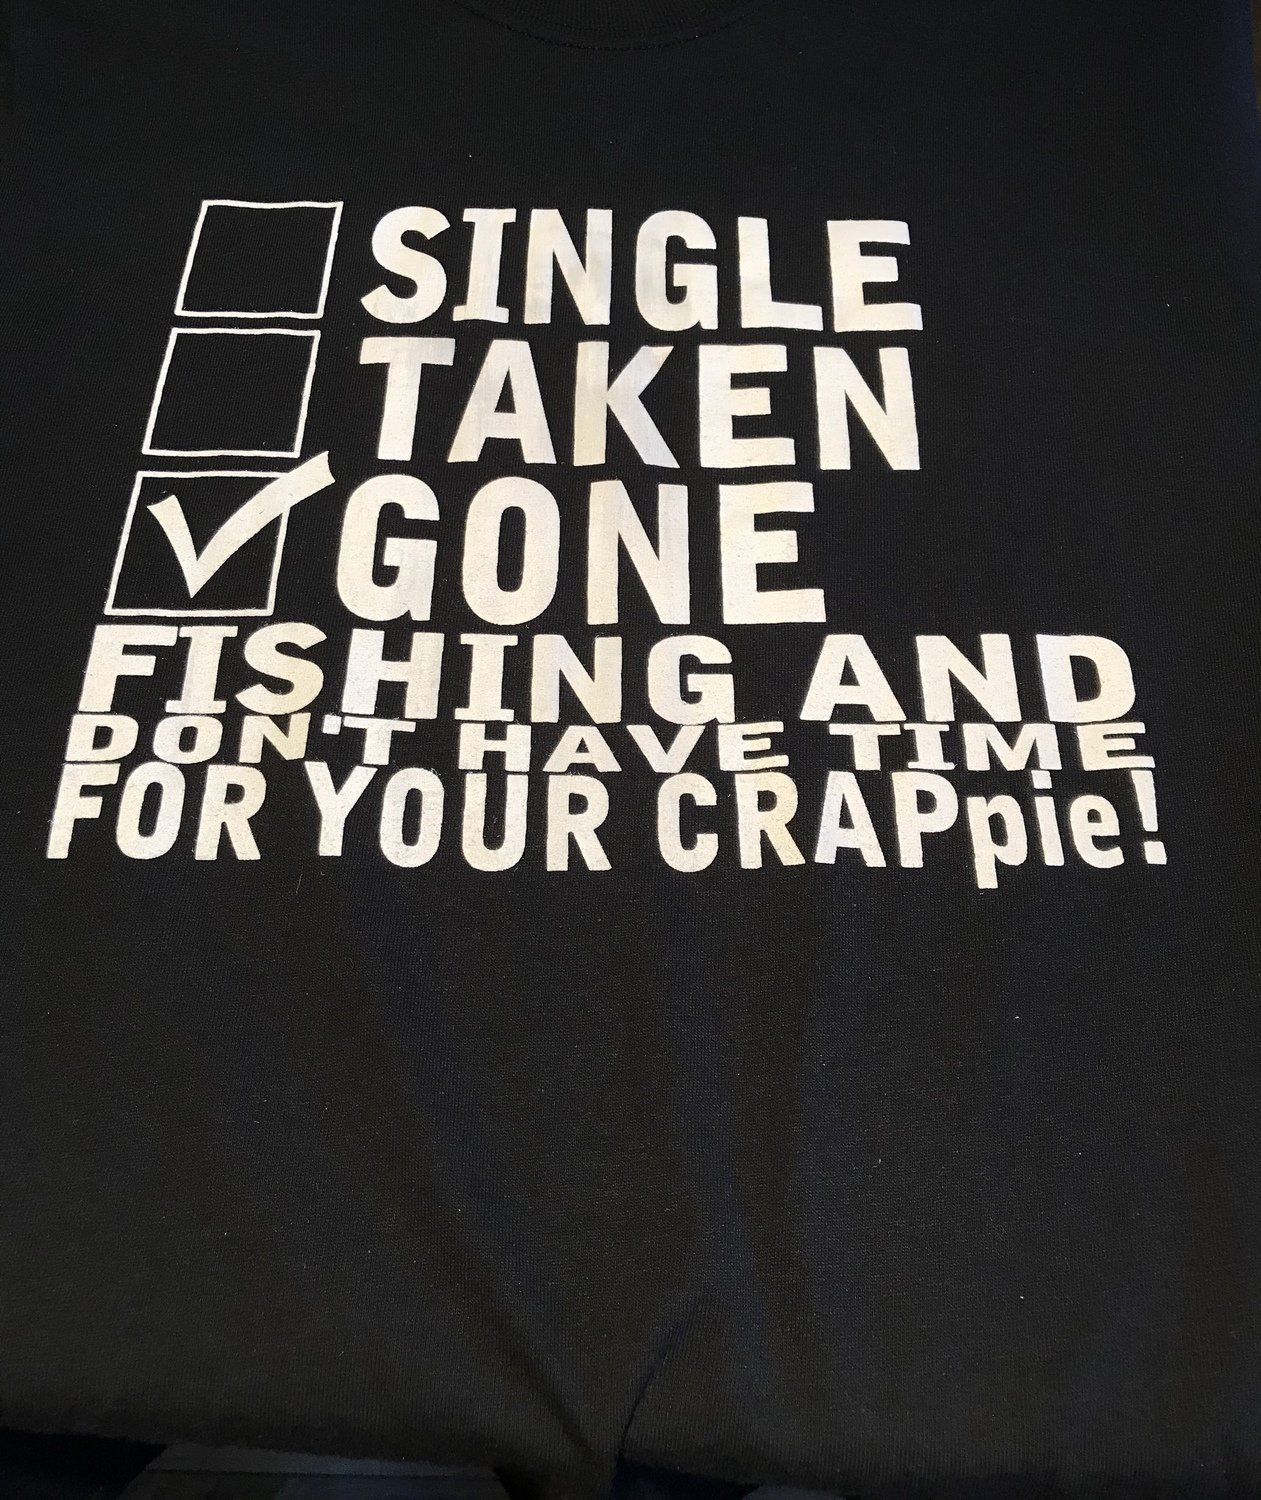 Don't Have Time for your CRAPpie